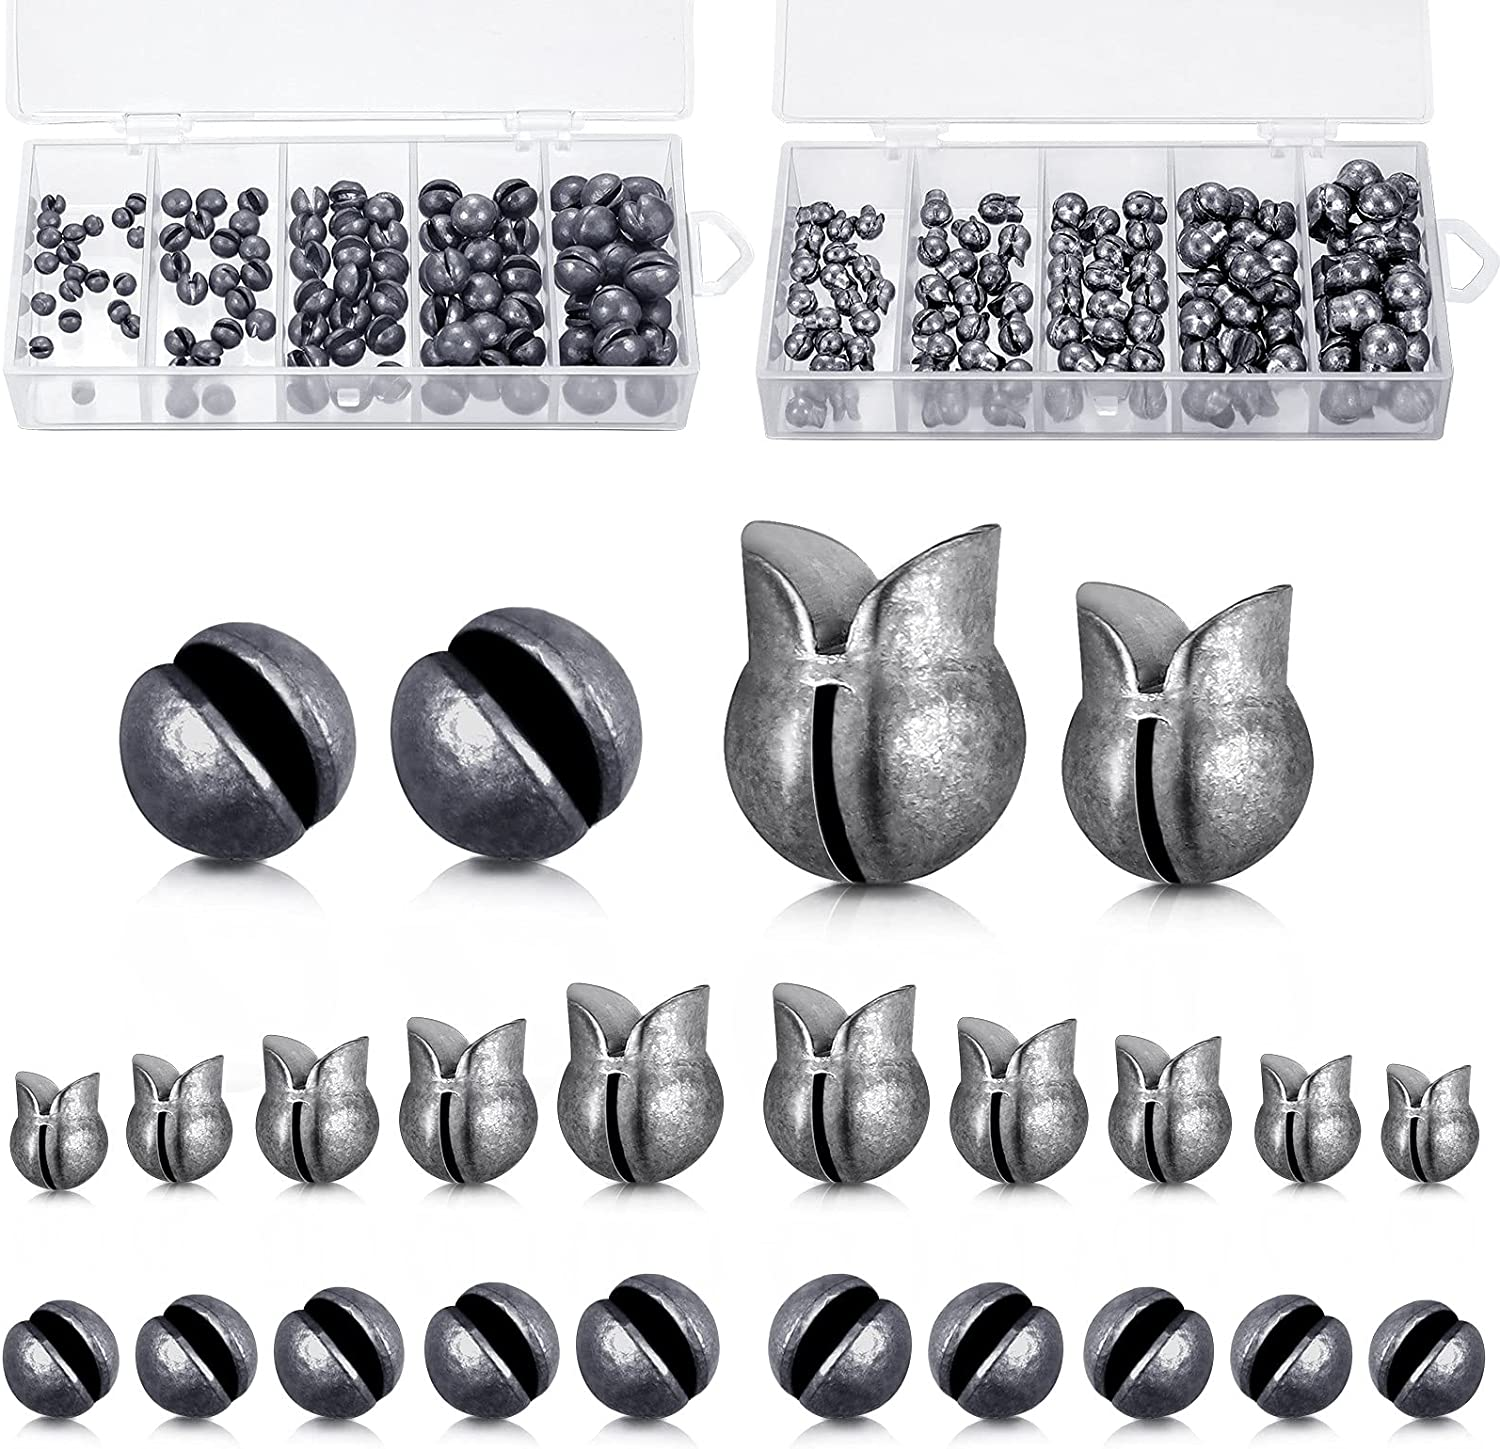 Gejoy 200 Soldering Pieces Fishing Weights Kit 2021 spring and summer new Sinkers Shot Split